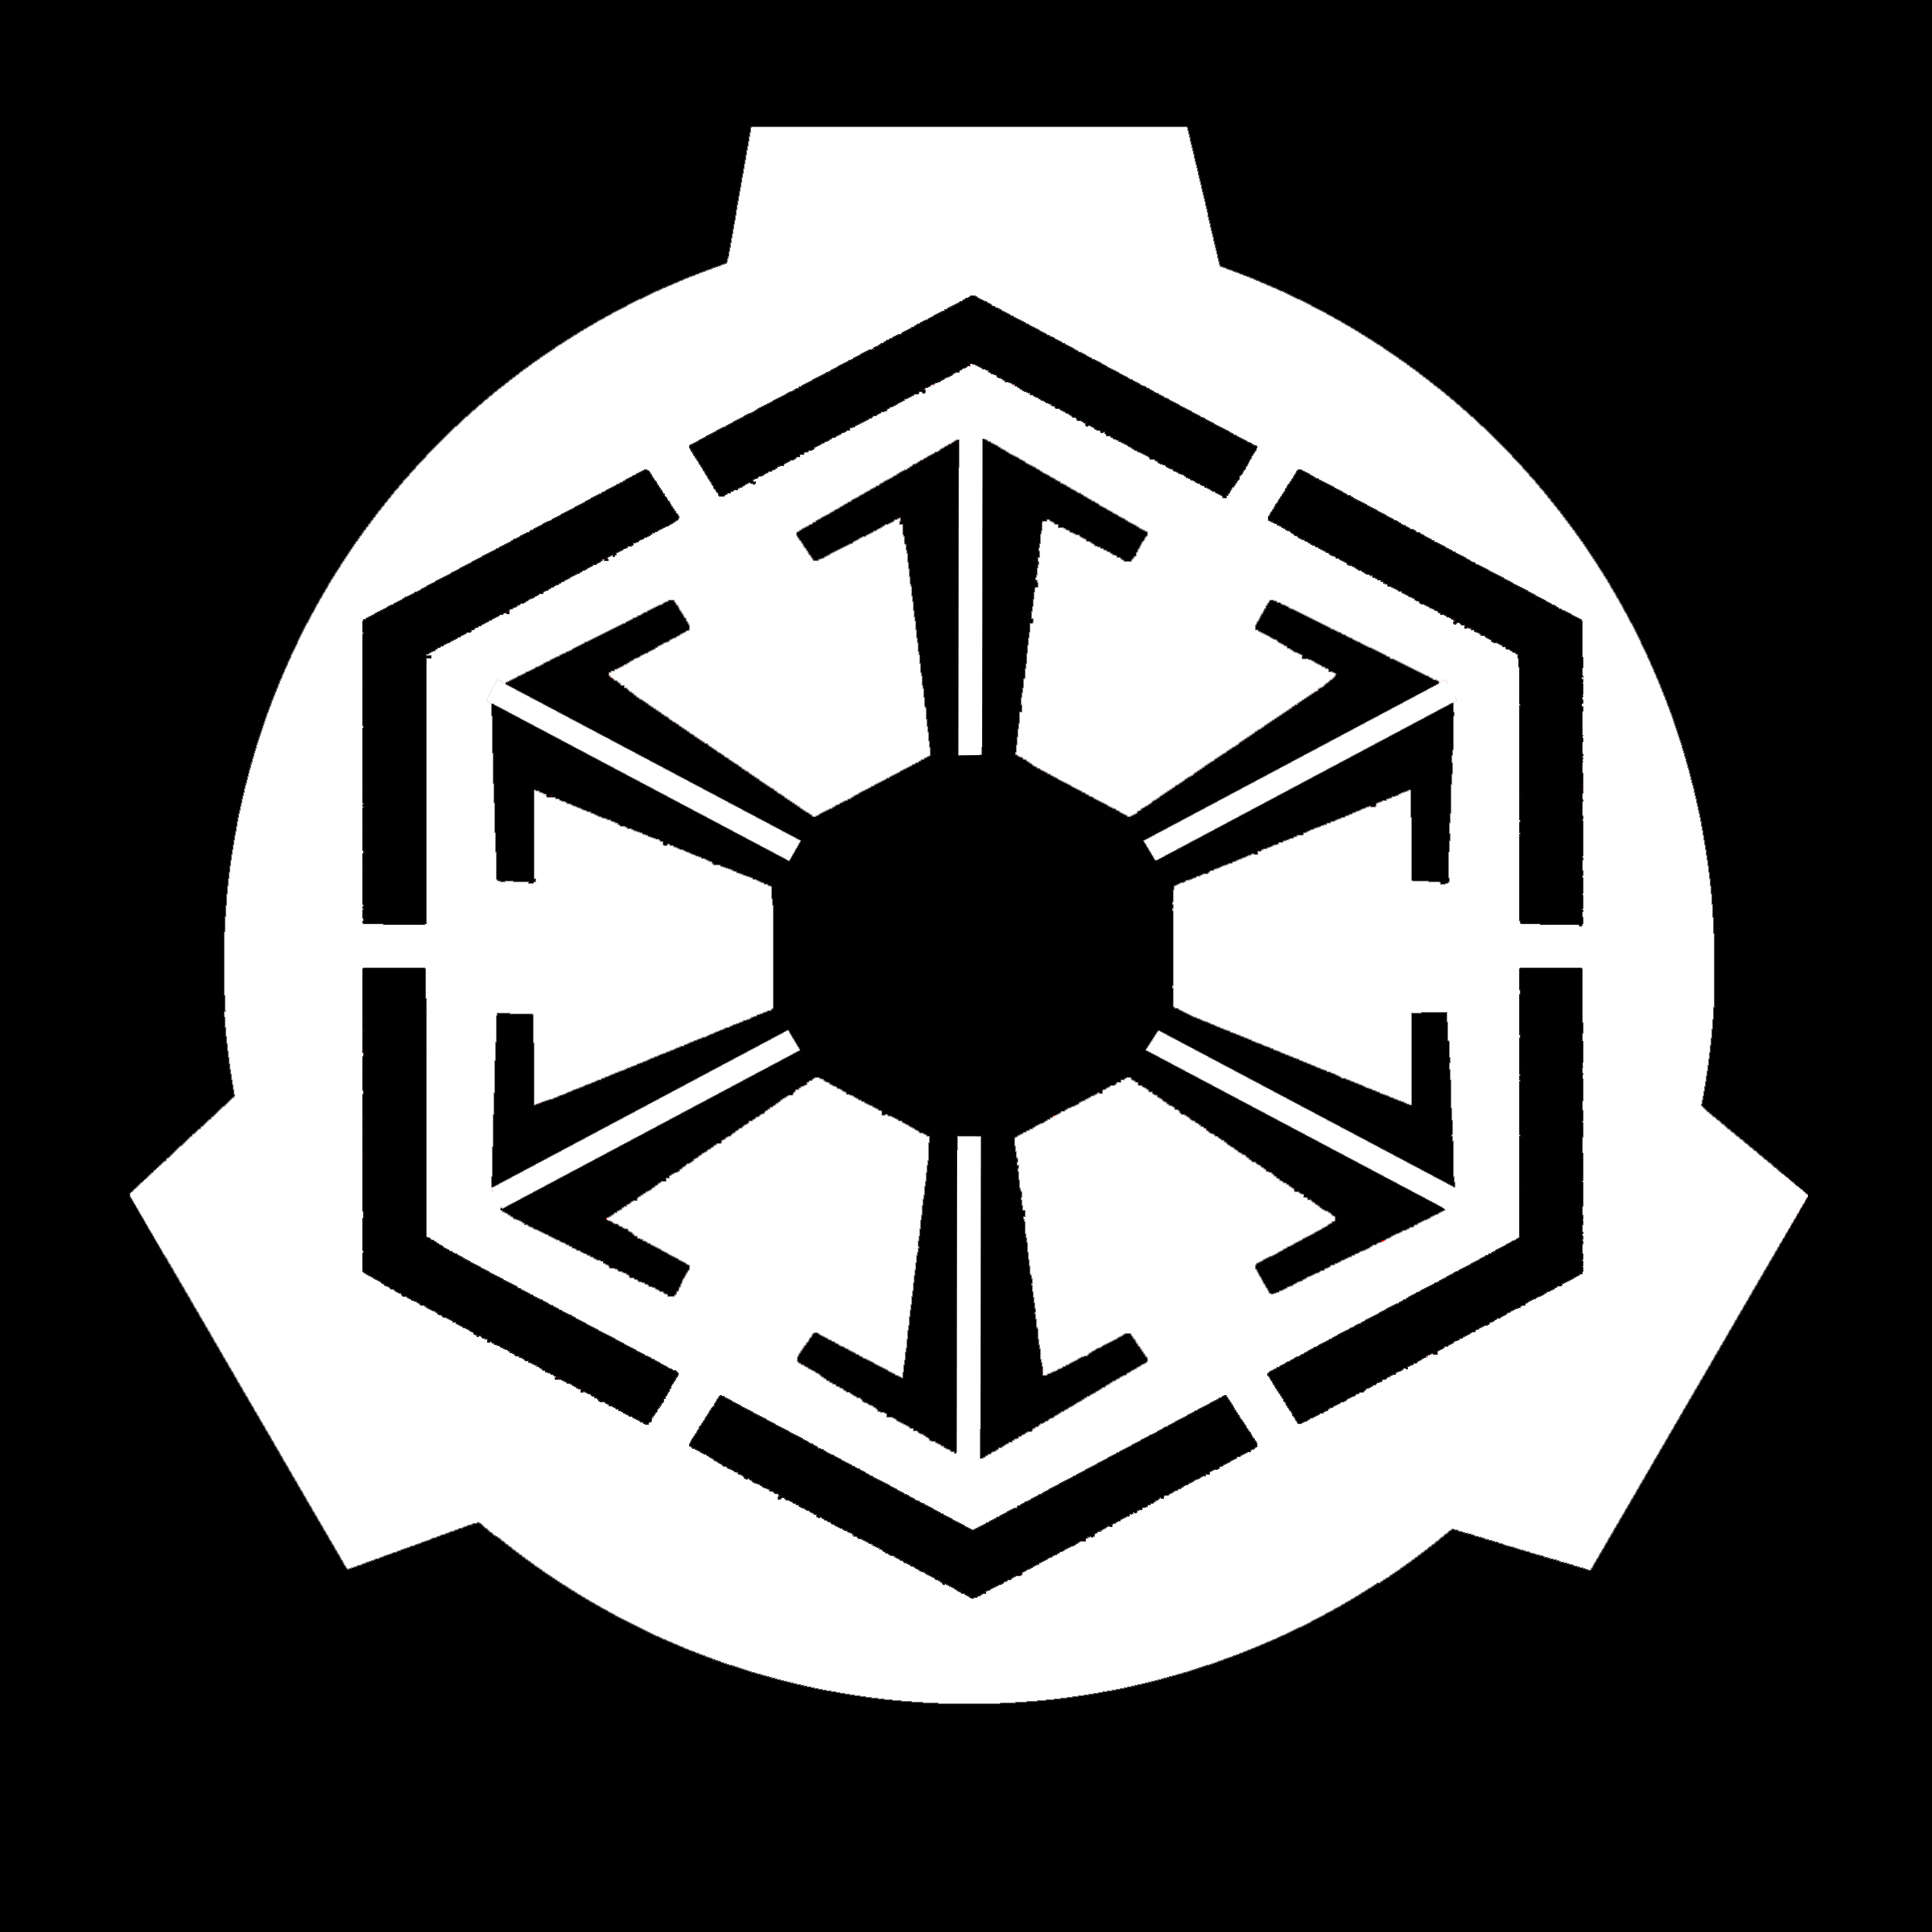 [Image: Sith_Research_Division_logo_v1.jpg]